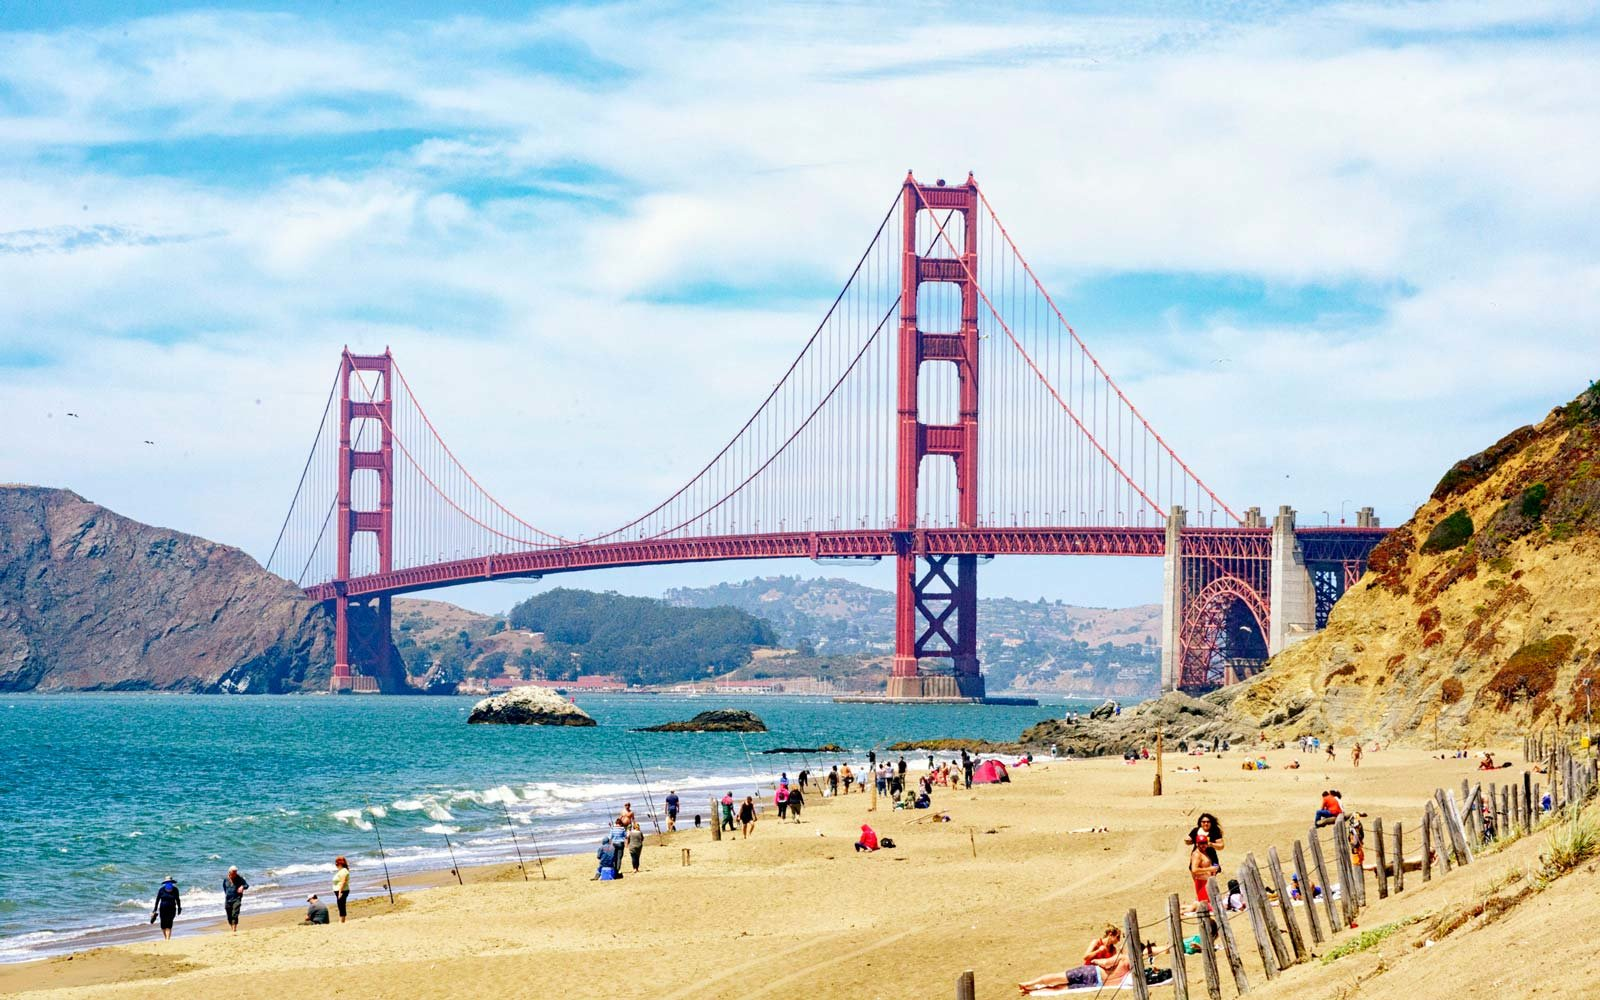 Baker Beach, California